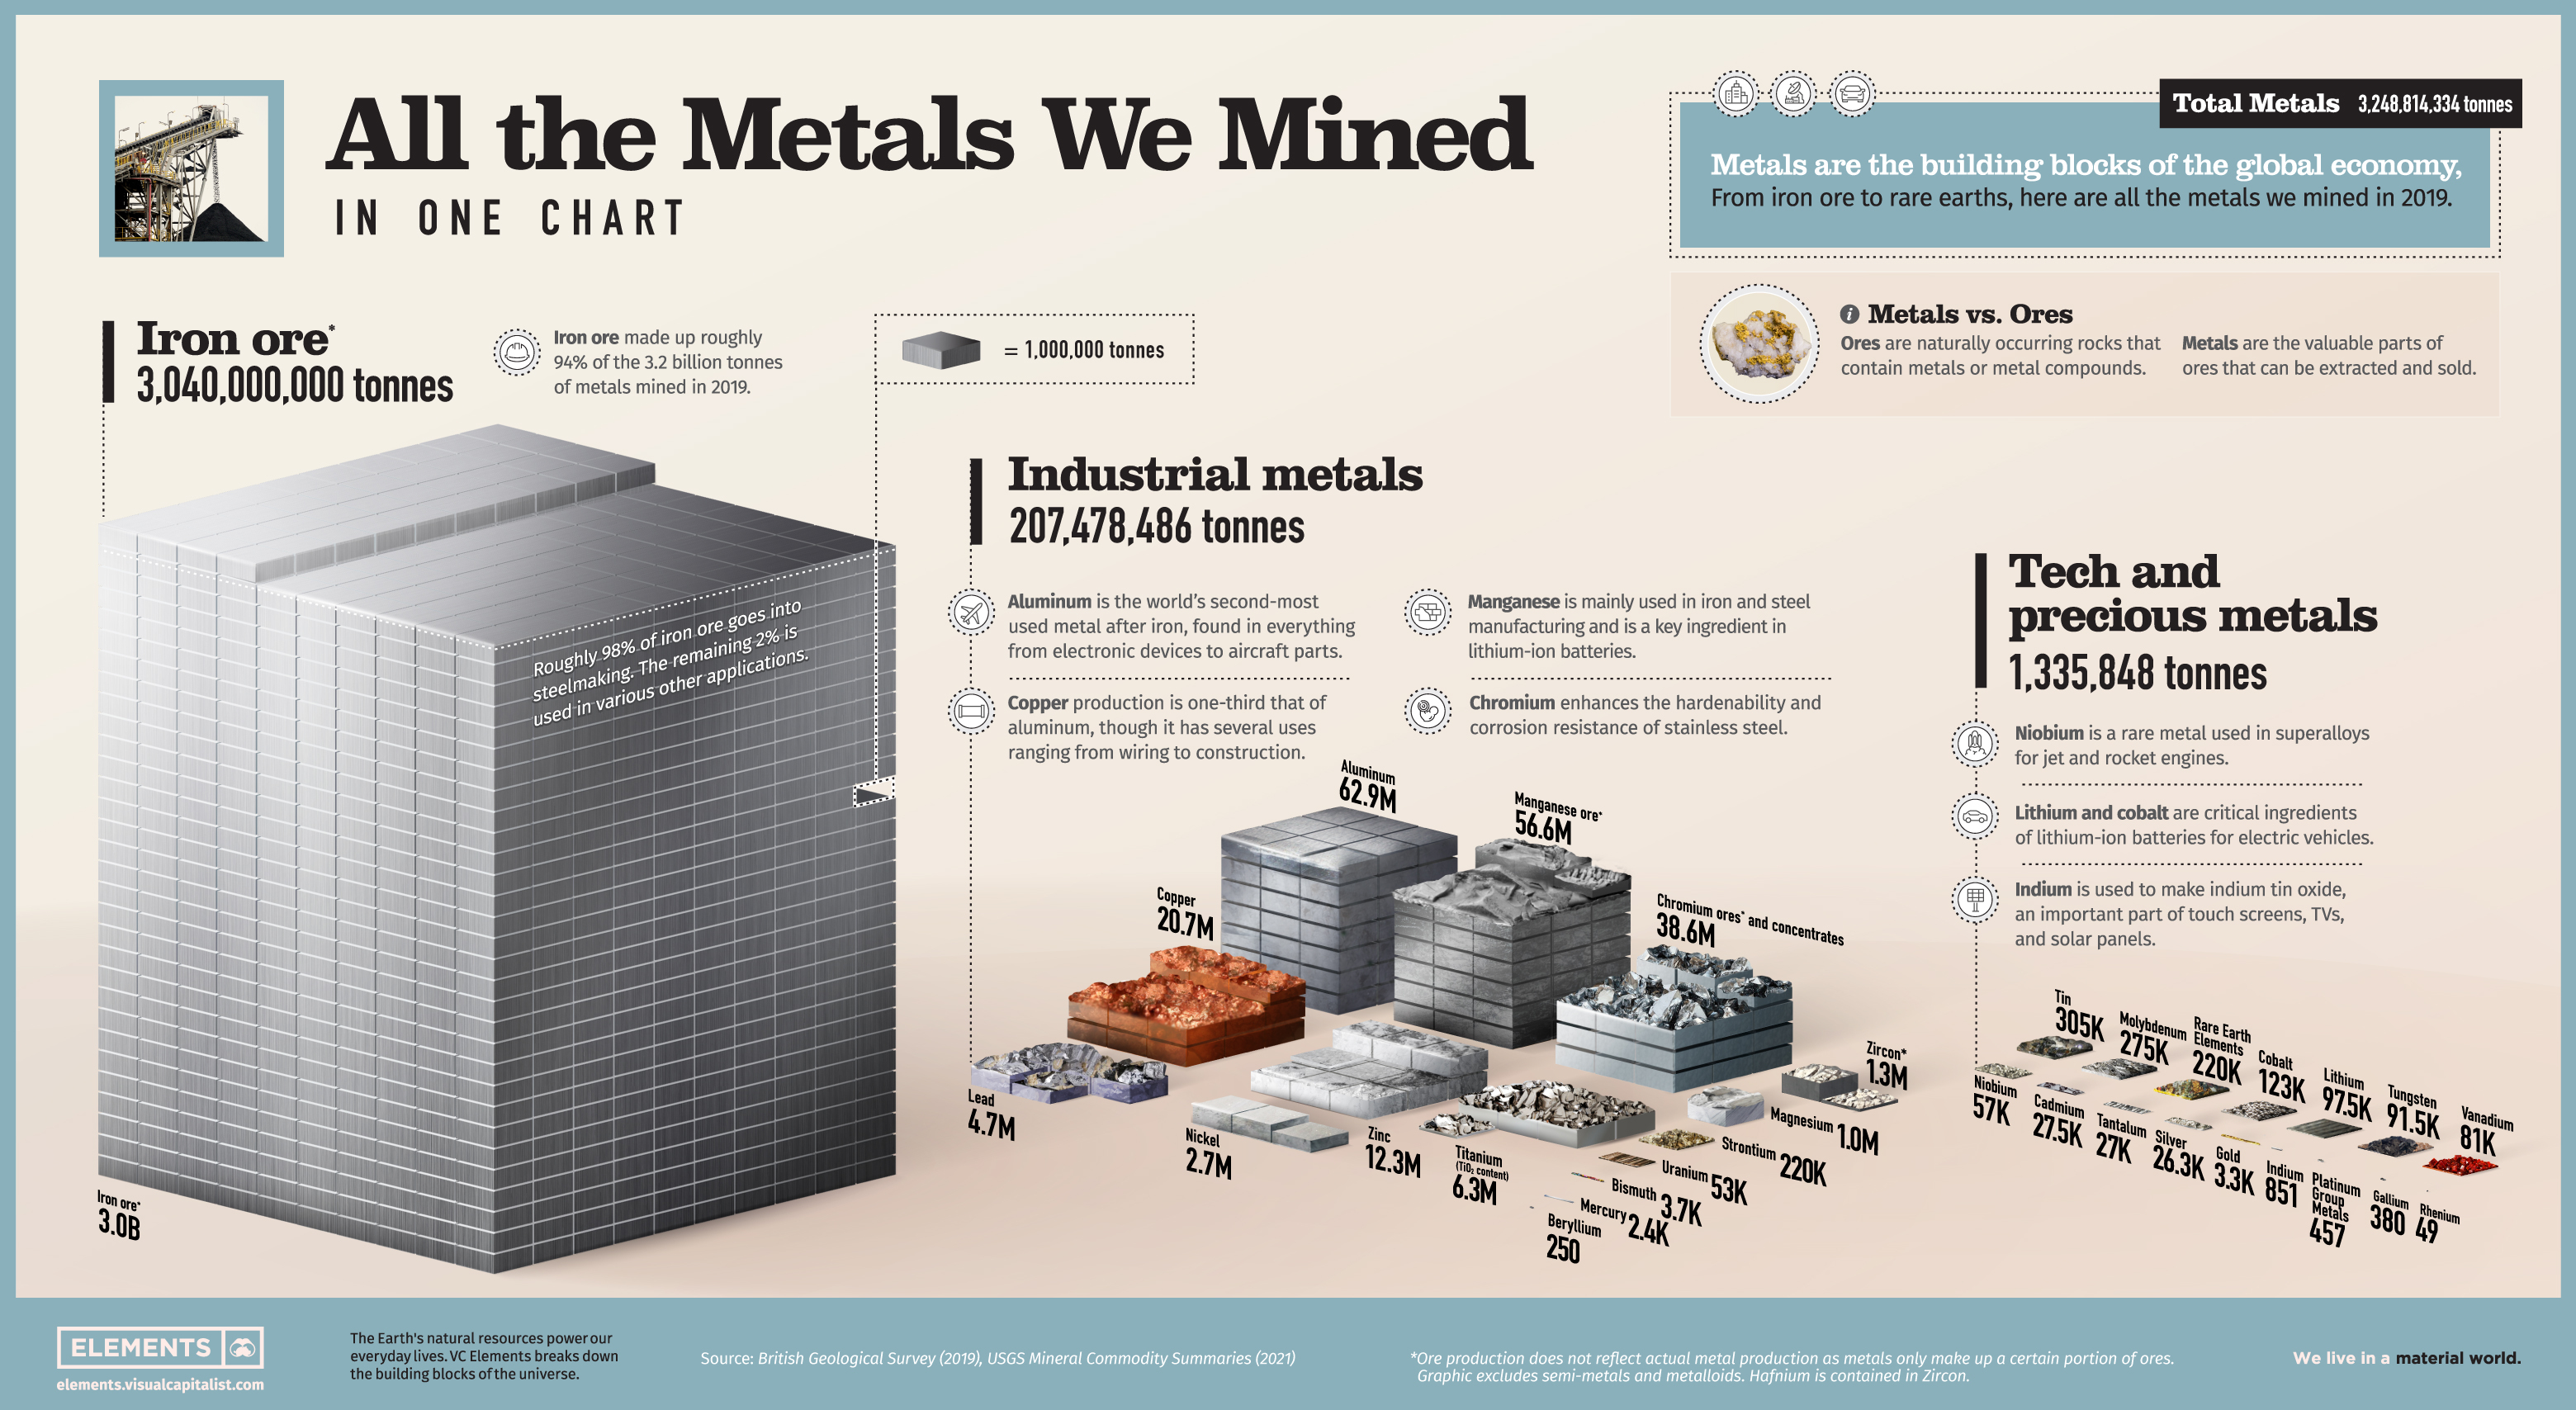 All-the-Metals-We-Mined